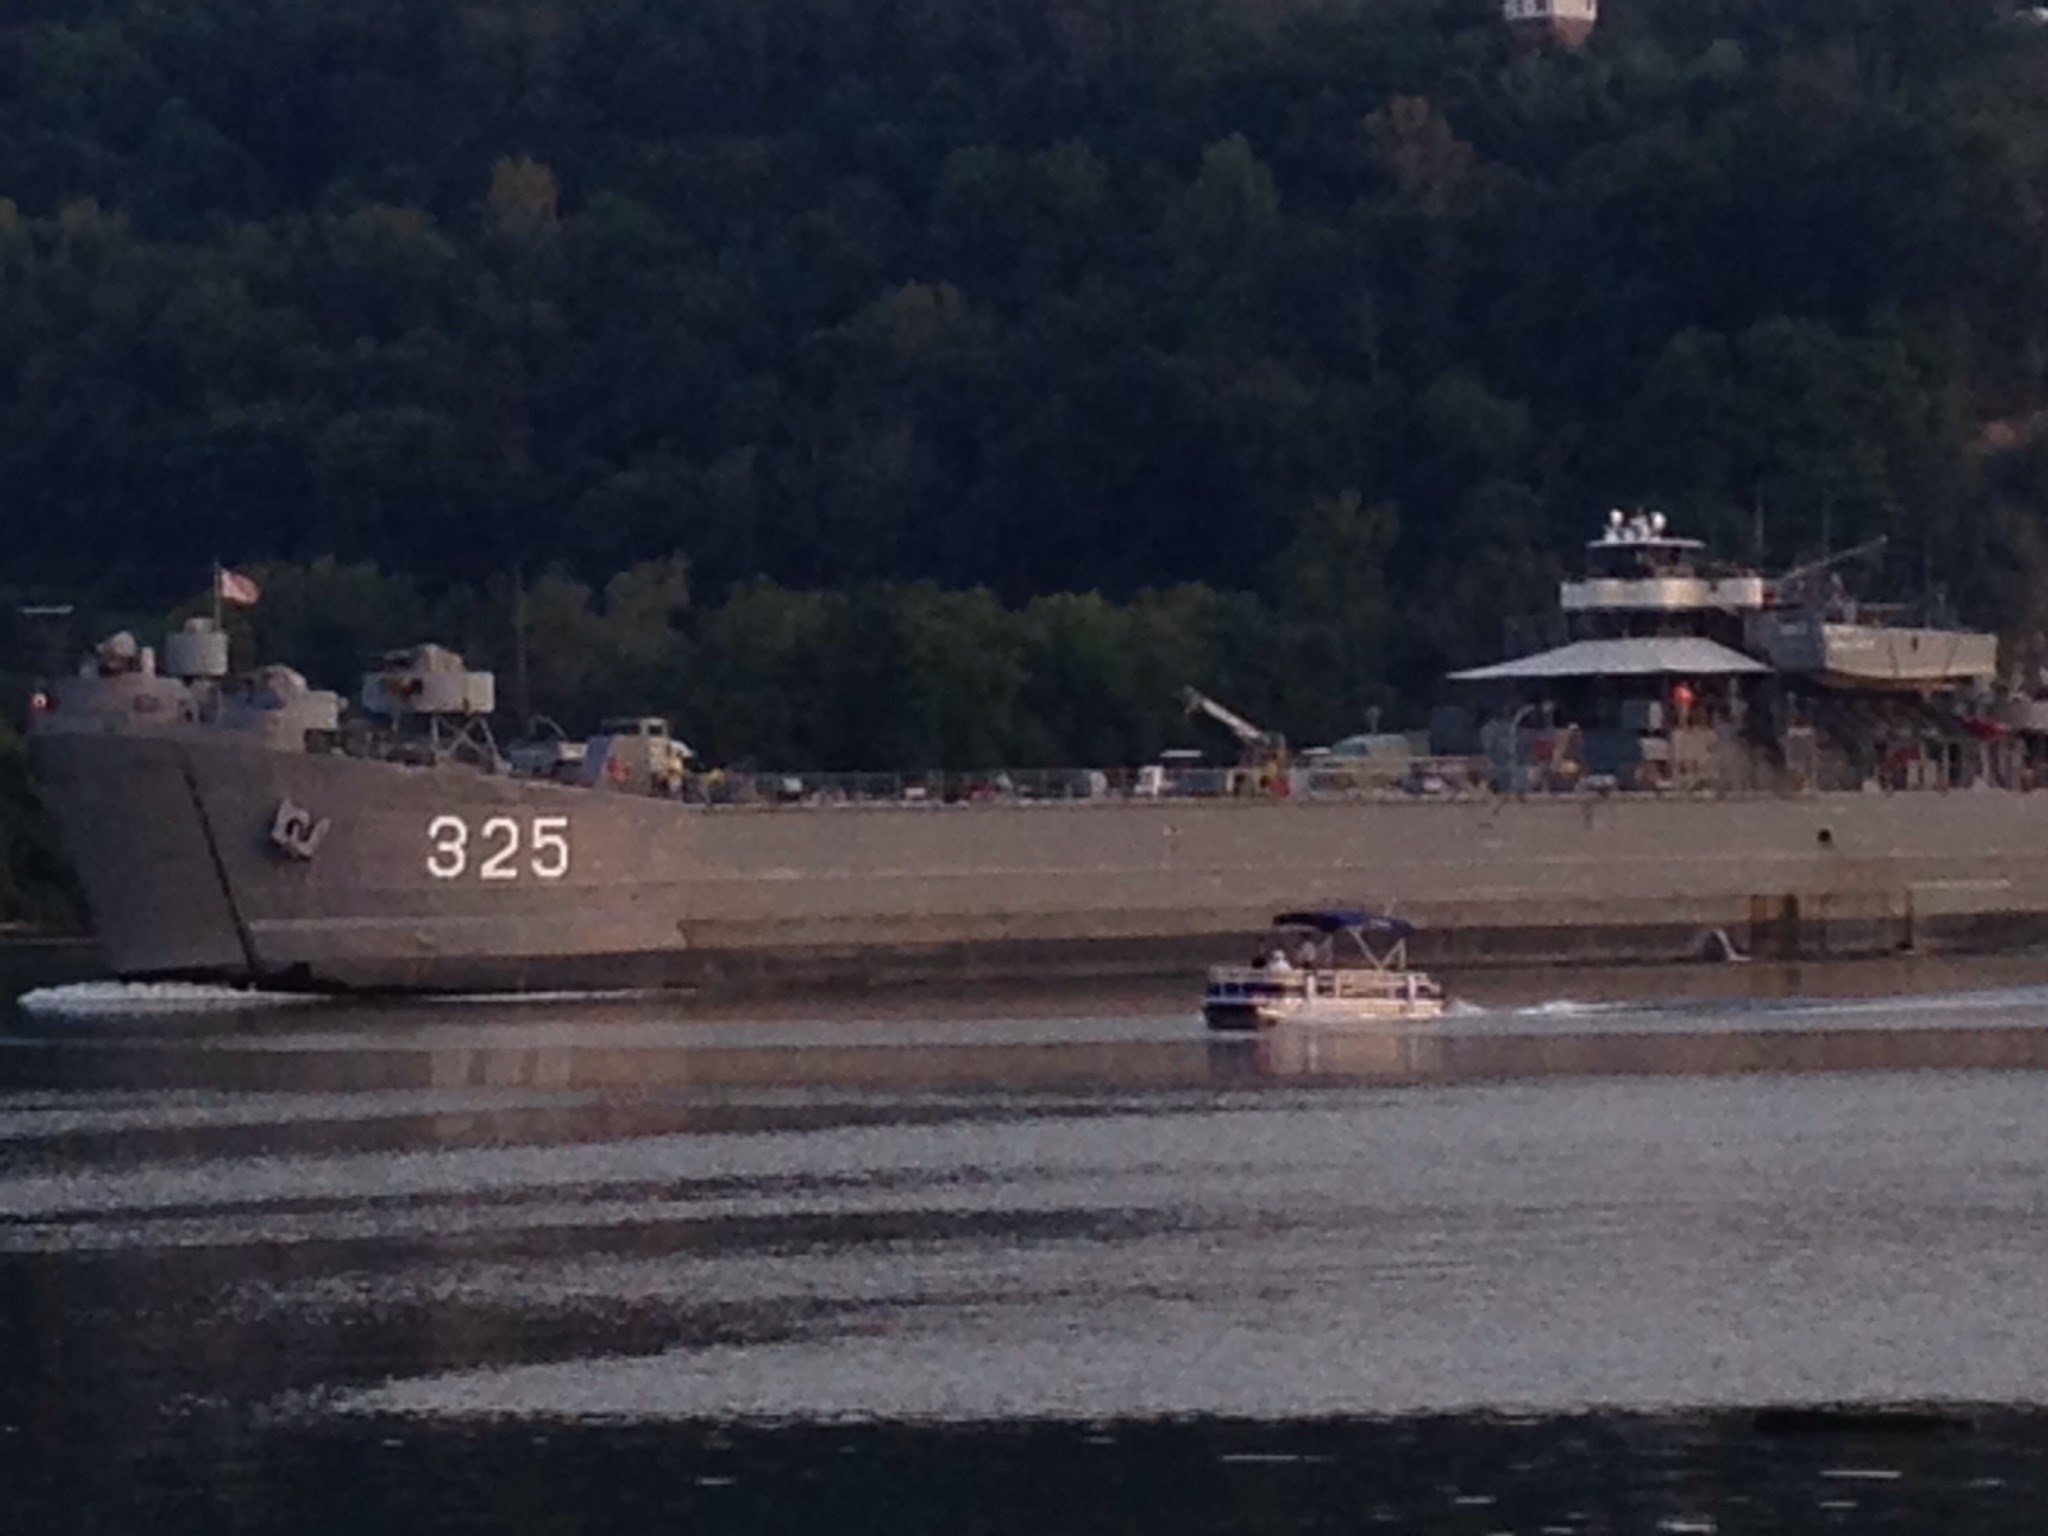 USS LST-325 will stay docked on the North Shore in Pittsburgh until September 8